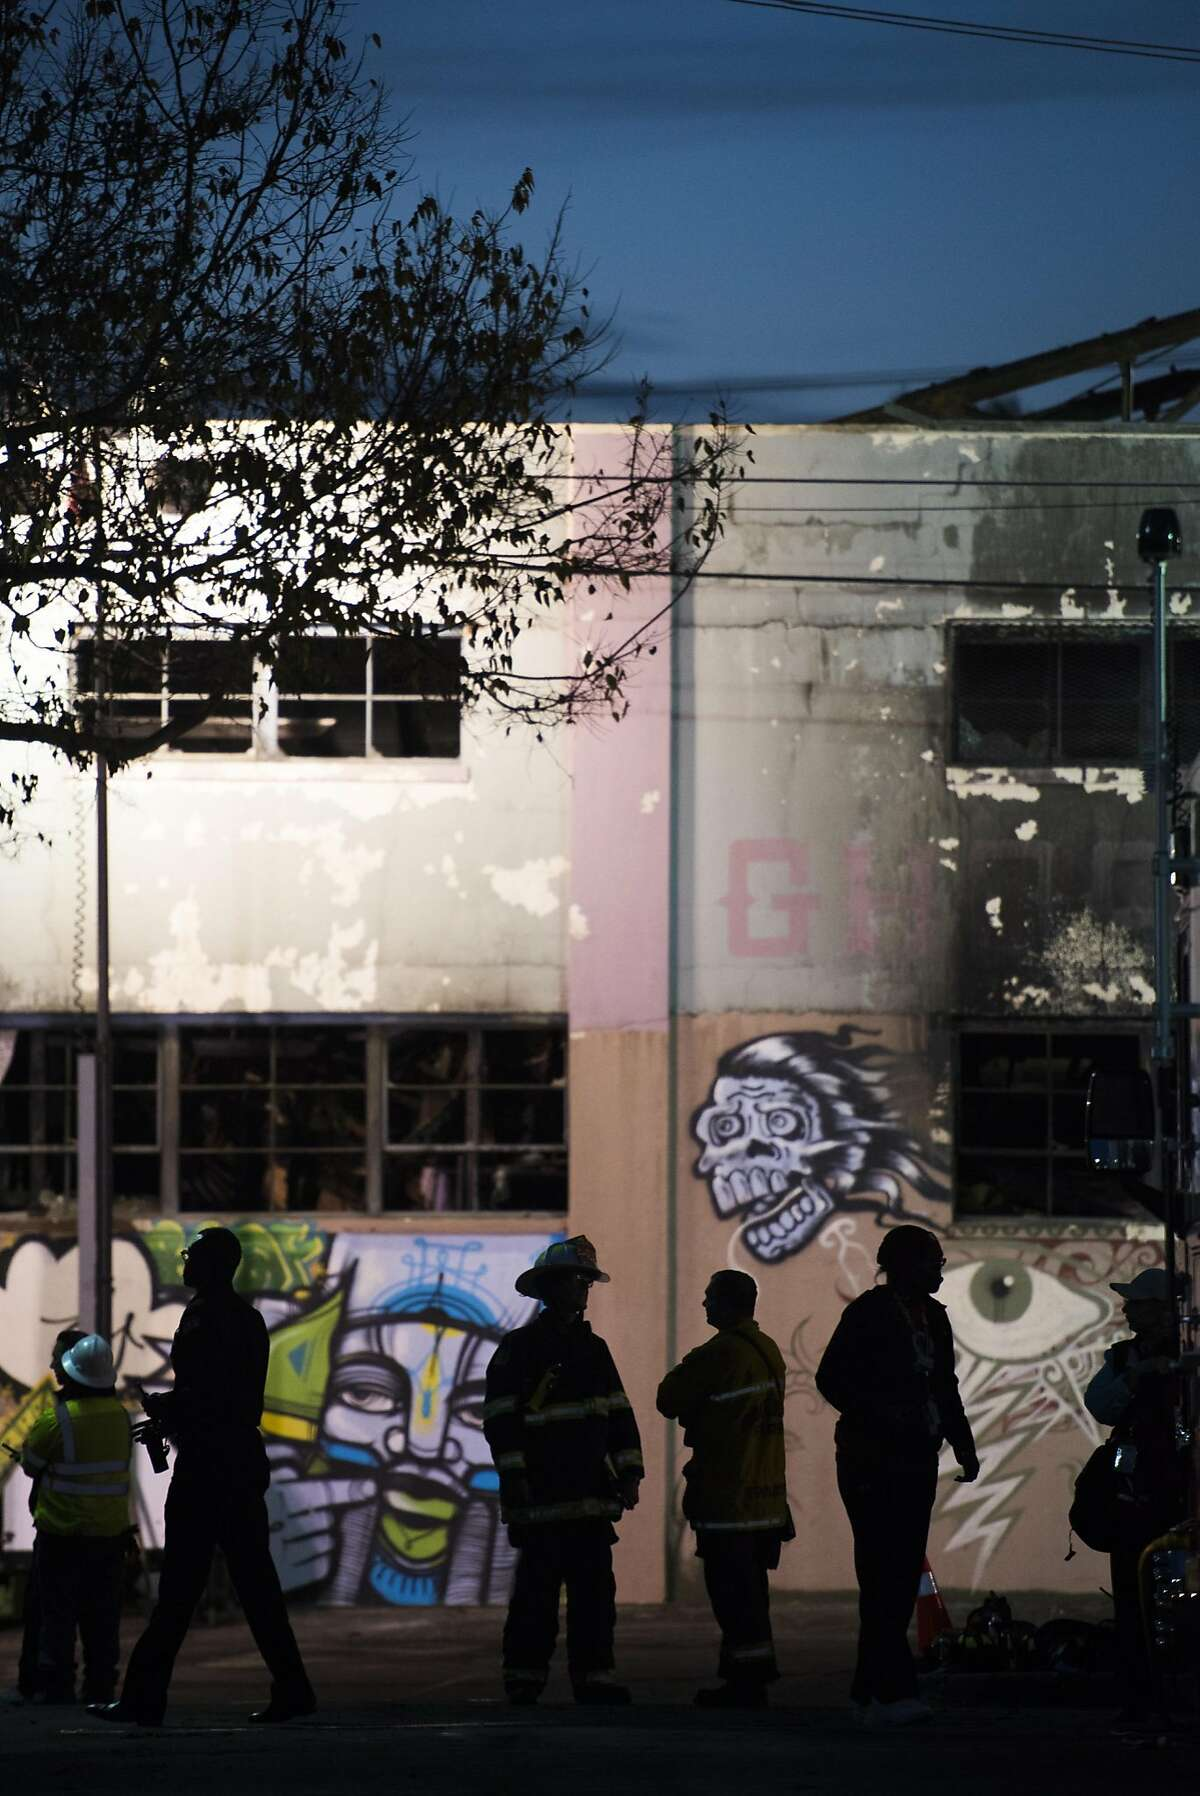 """Emergency personnel work at the scene of the Oakland warehouse fire on December 4, 2016 in Oakland, California. The fire, at an artist's warehouse known as the """"Ghost Ship,"""" began late on the evening of December 2nd, with 33 confirmed dead so far."""